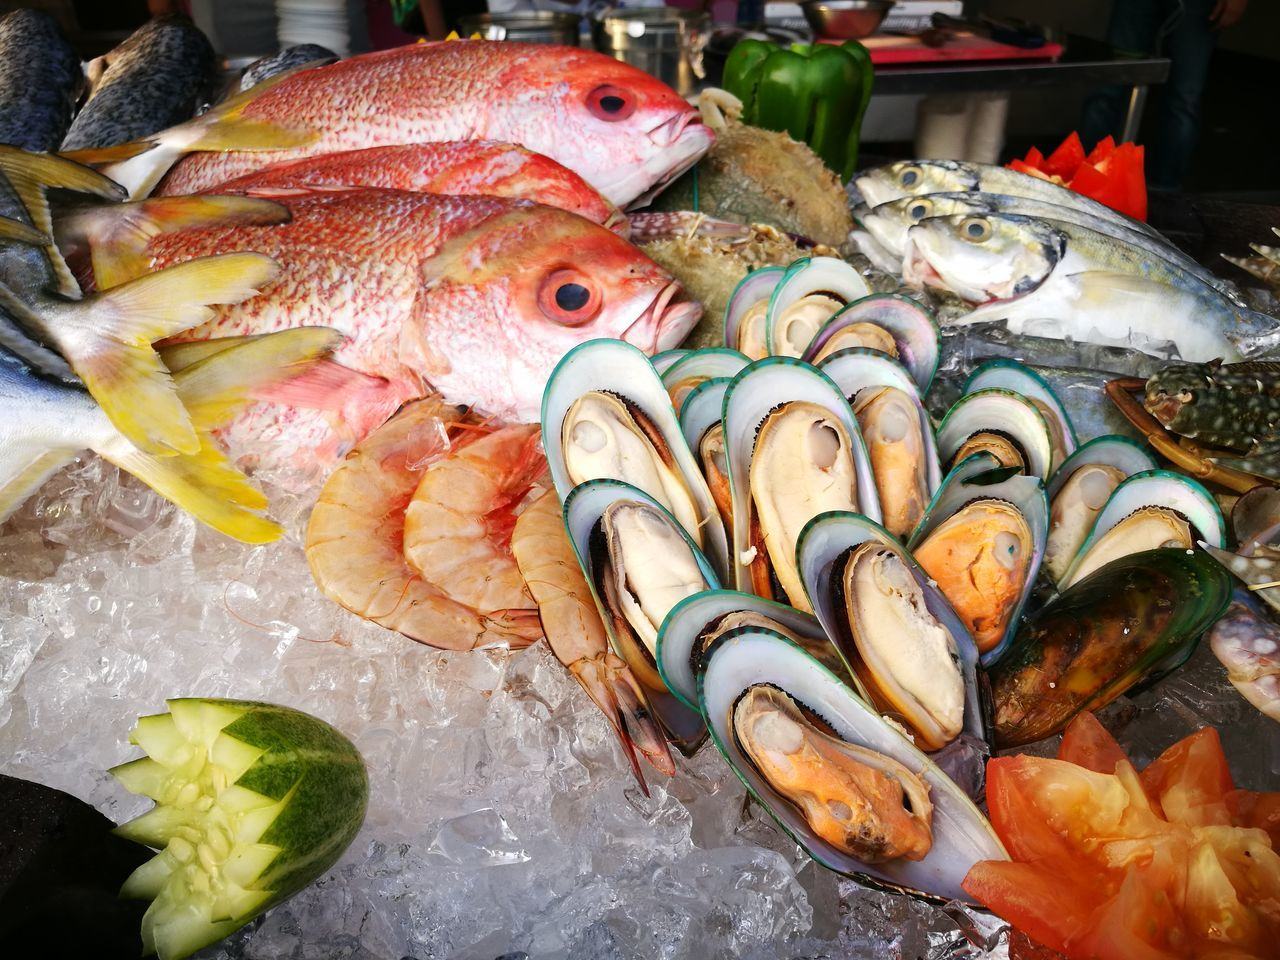 Seafood Fish Freshness Food And Drink Food Healthy Eating Raw Food Fish Market High Angle View Variation Close-up Indoors  Choice For Sale Market No People Large Group Of Animals Animal Themes Octopus Day